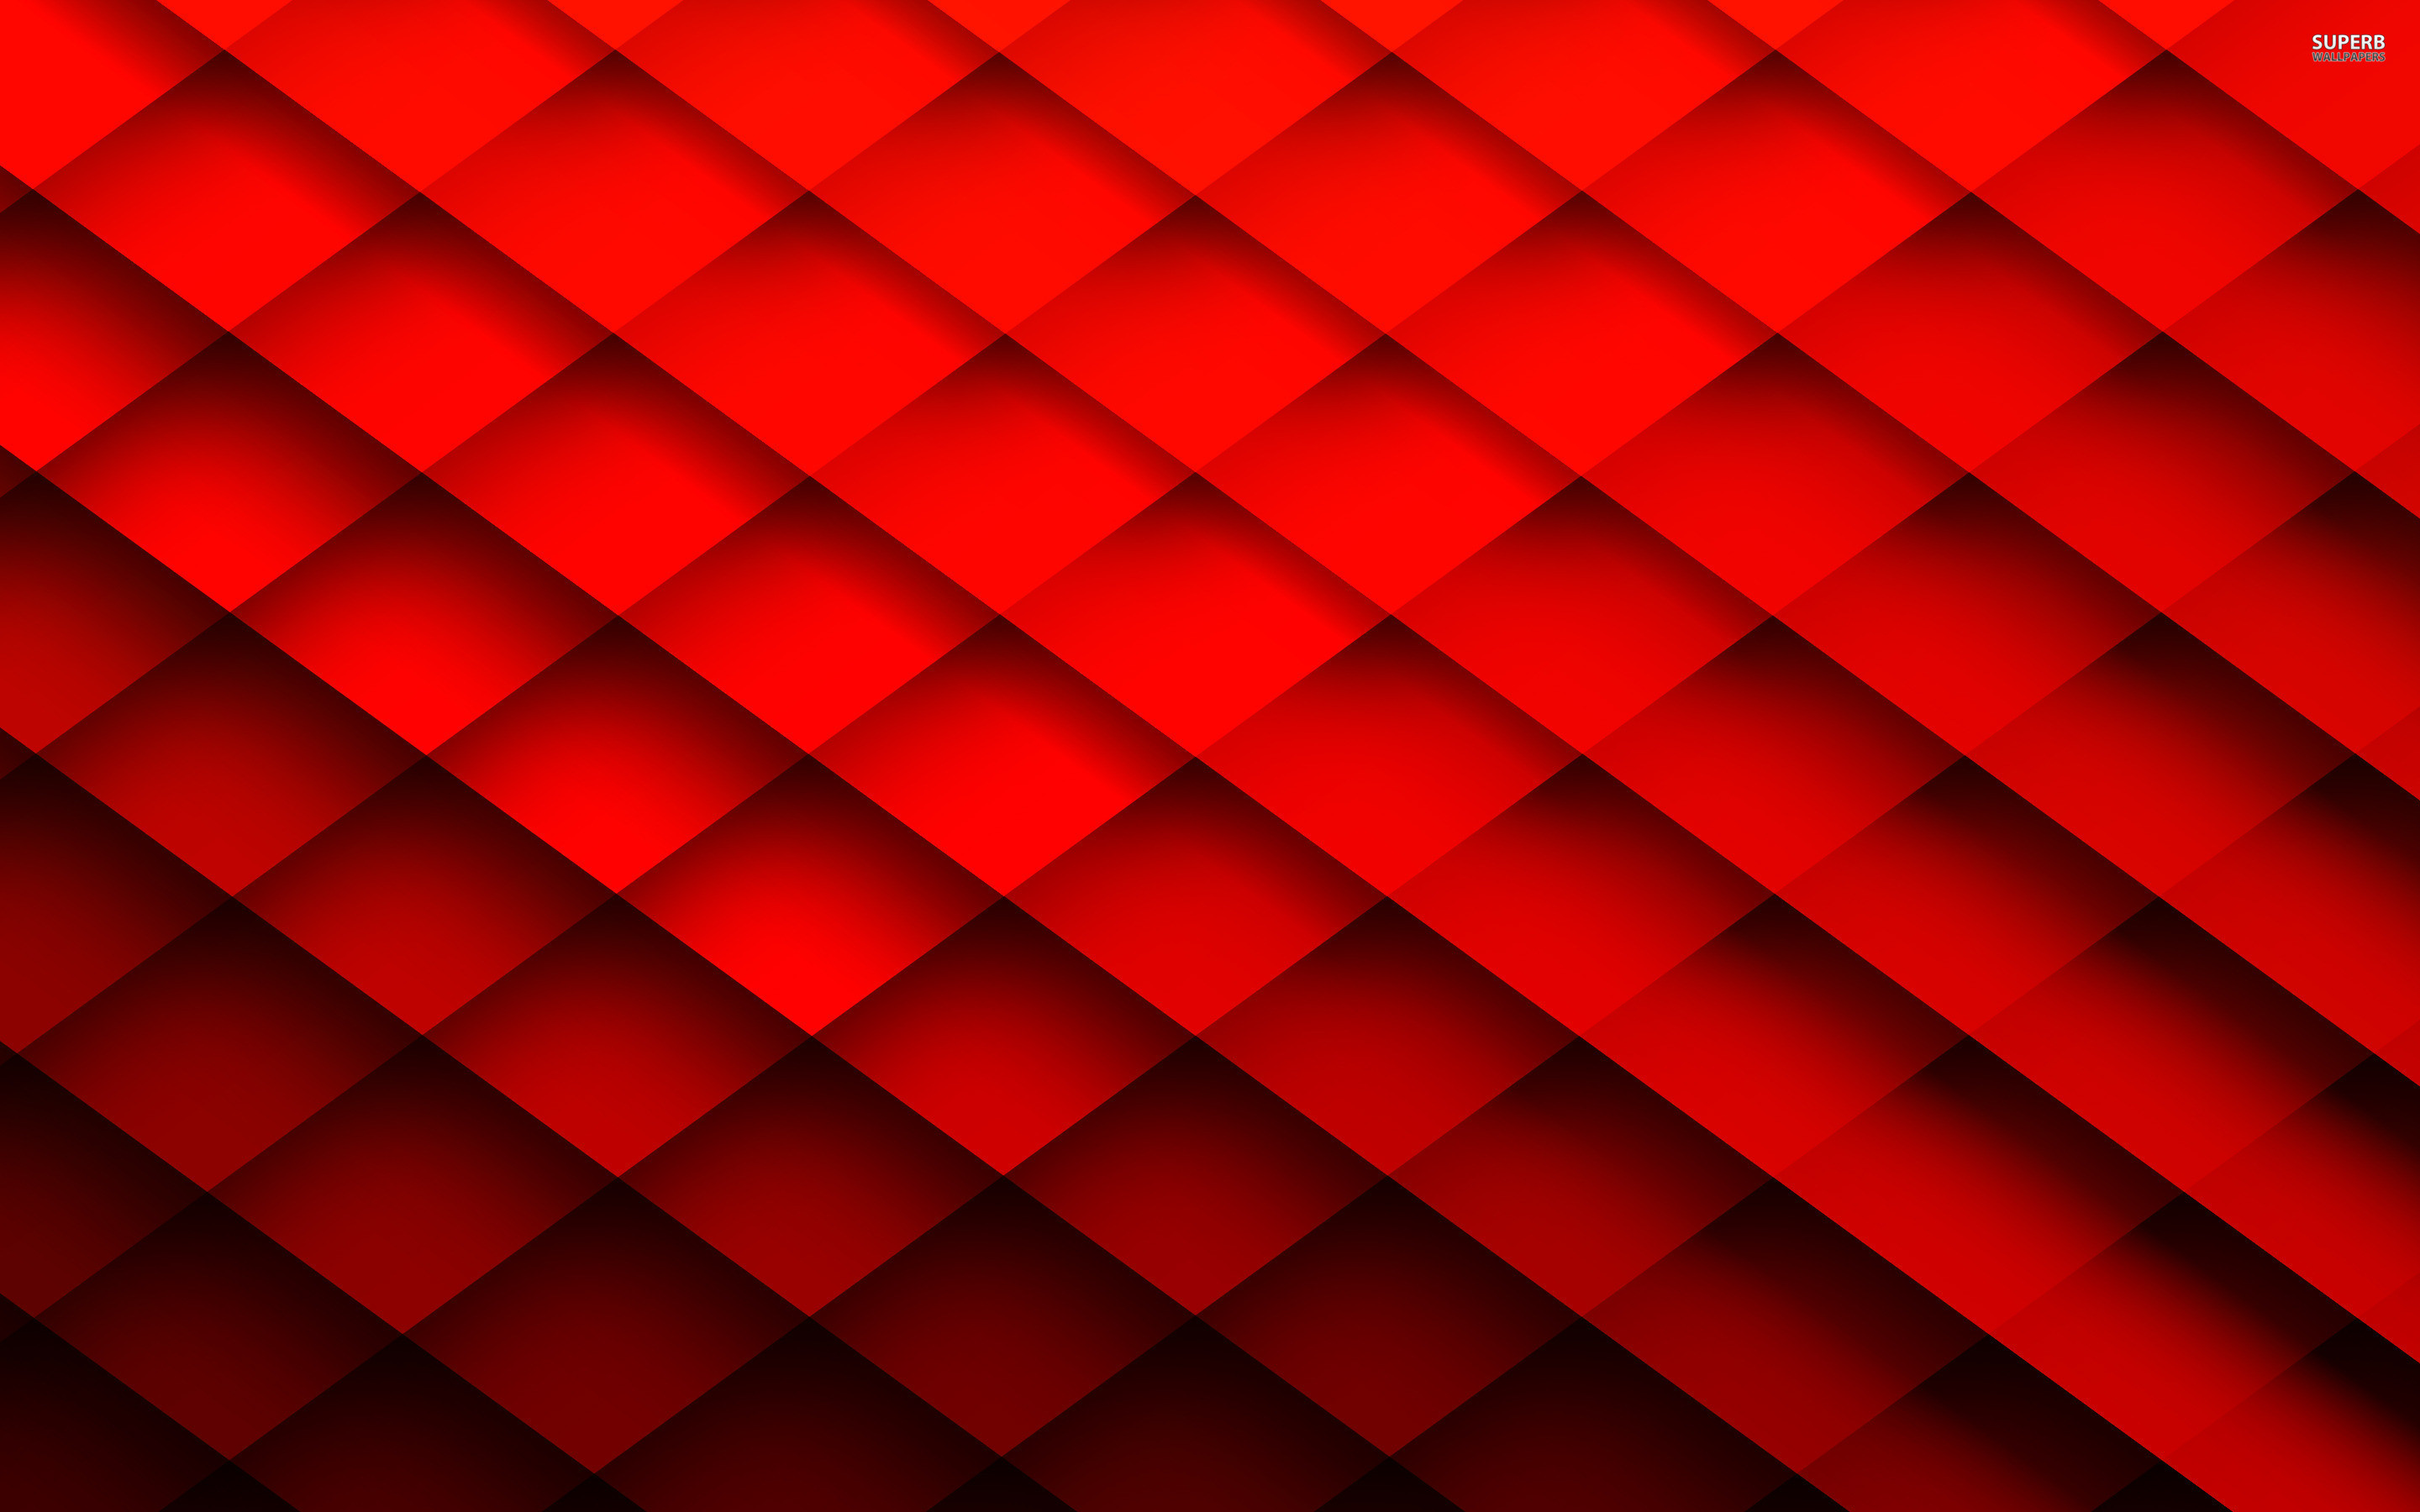 Red Abstract Hd Wallpaper Source. Red …